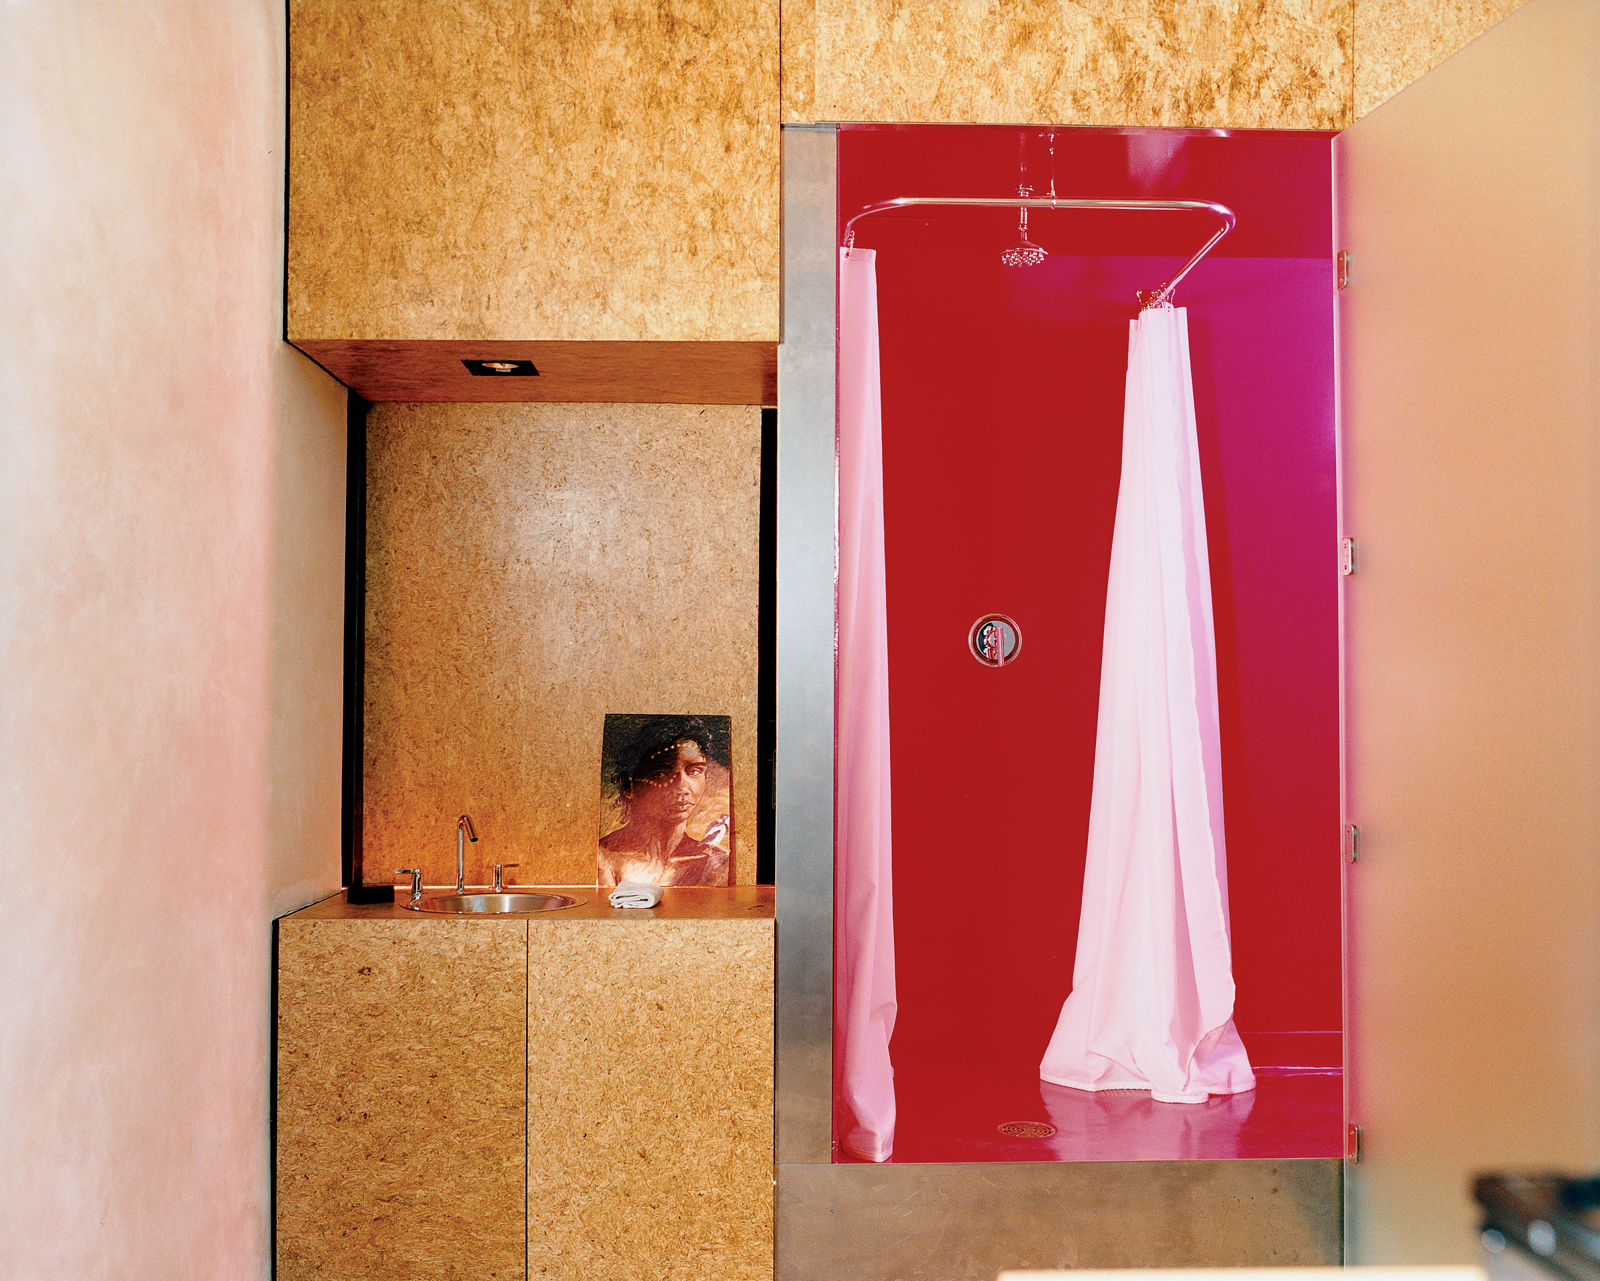 The Trzebiatowskis' bathroom retains the spirit of Arizona heat with its shocking magenta ceilings, floors, and walls. The vanity is anything but—opting for art instead of a mounted mirror—and is made from sanded and sealed oriented strand board (OSB), a